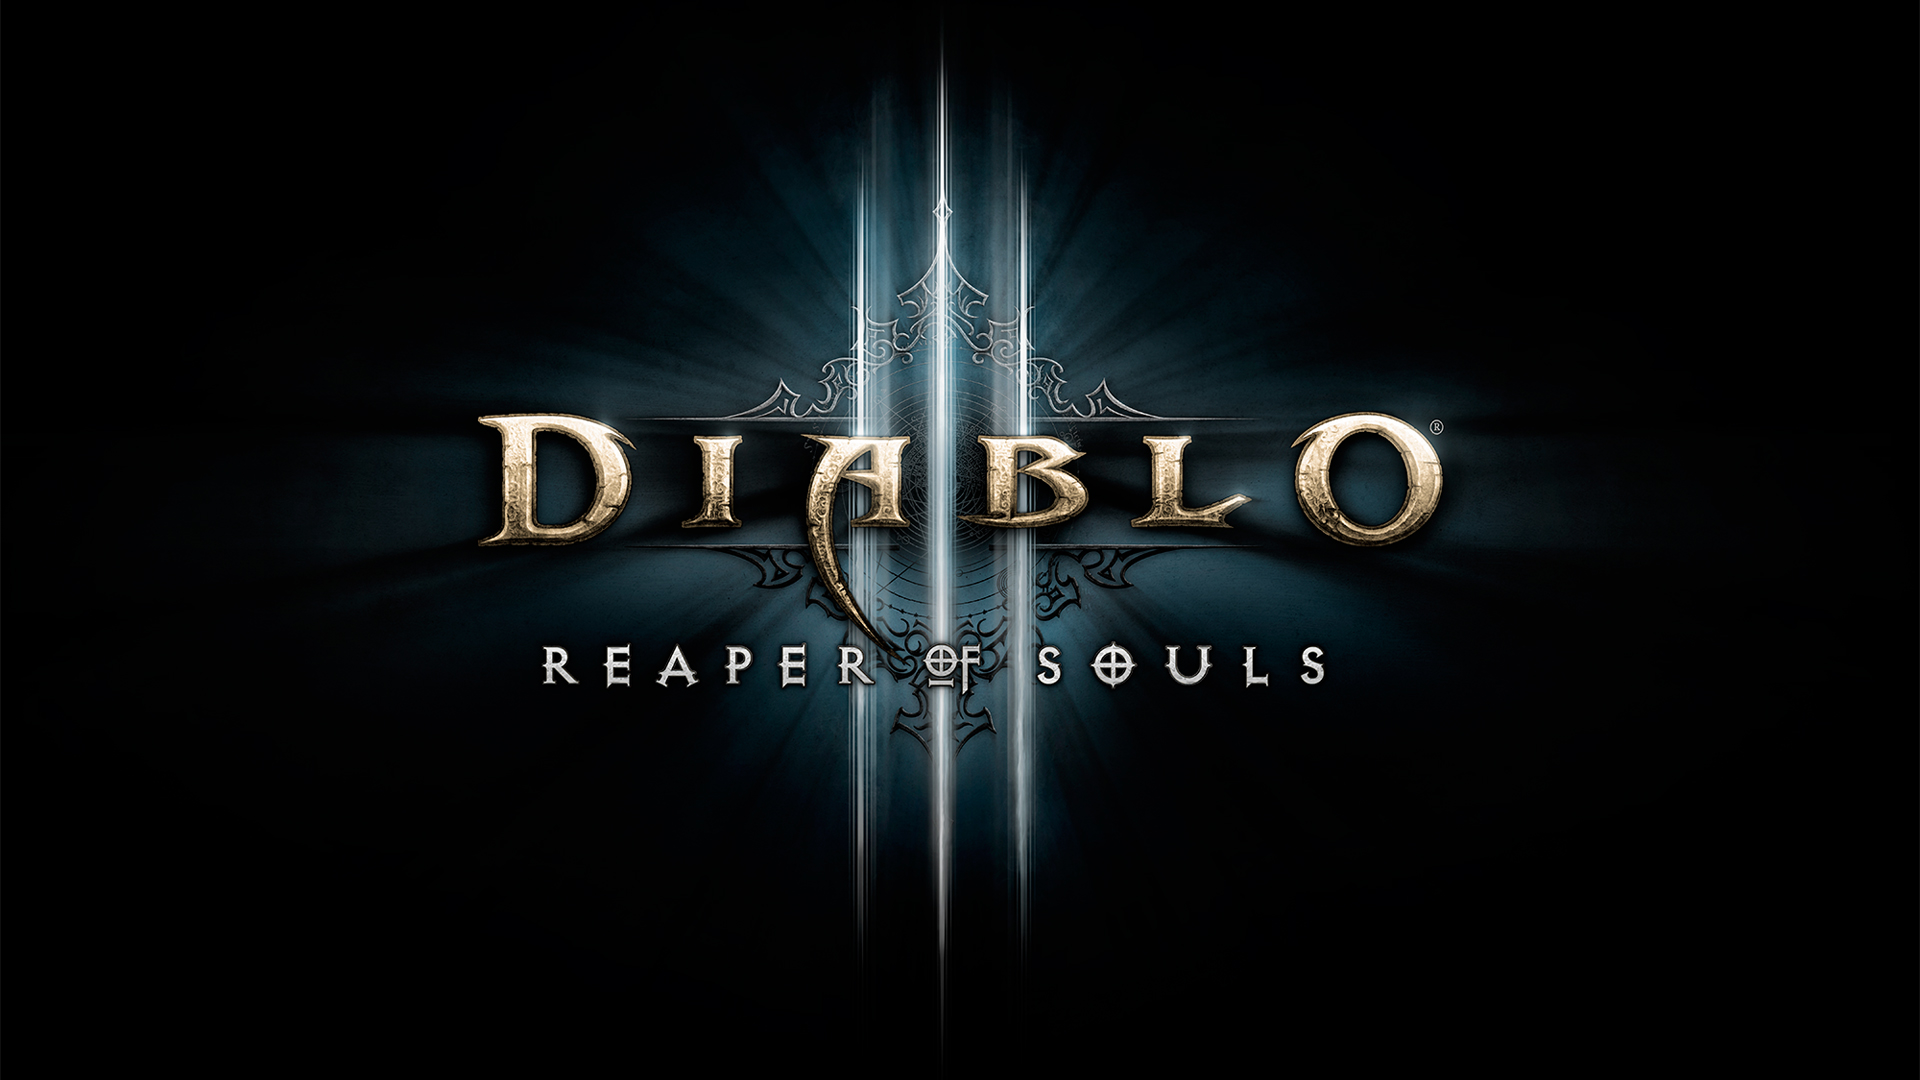 First Diablo 3 Content Patch Released For Reaper Of Souls